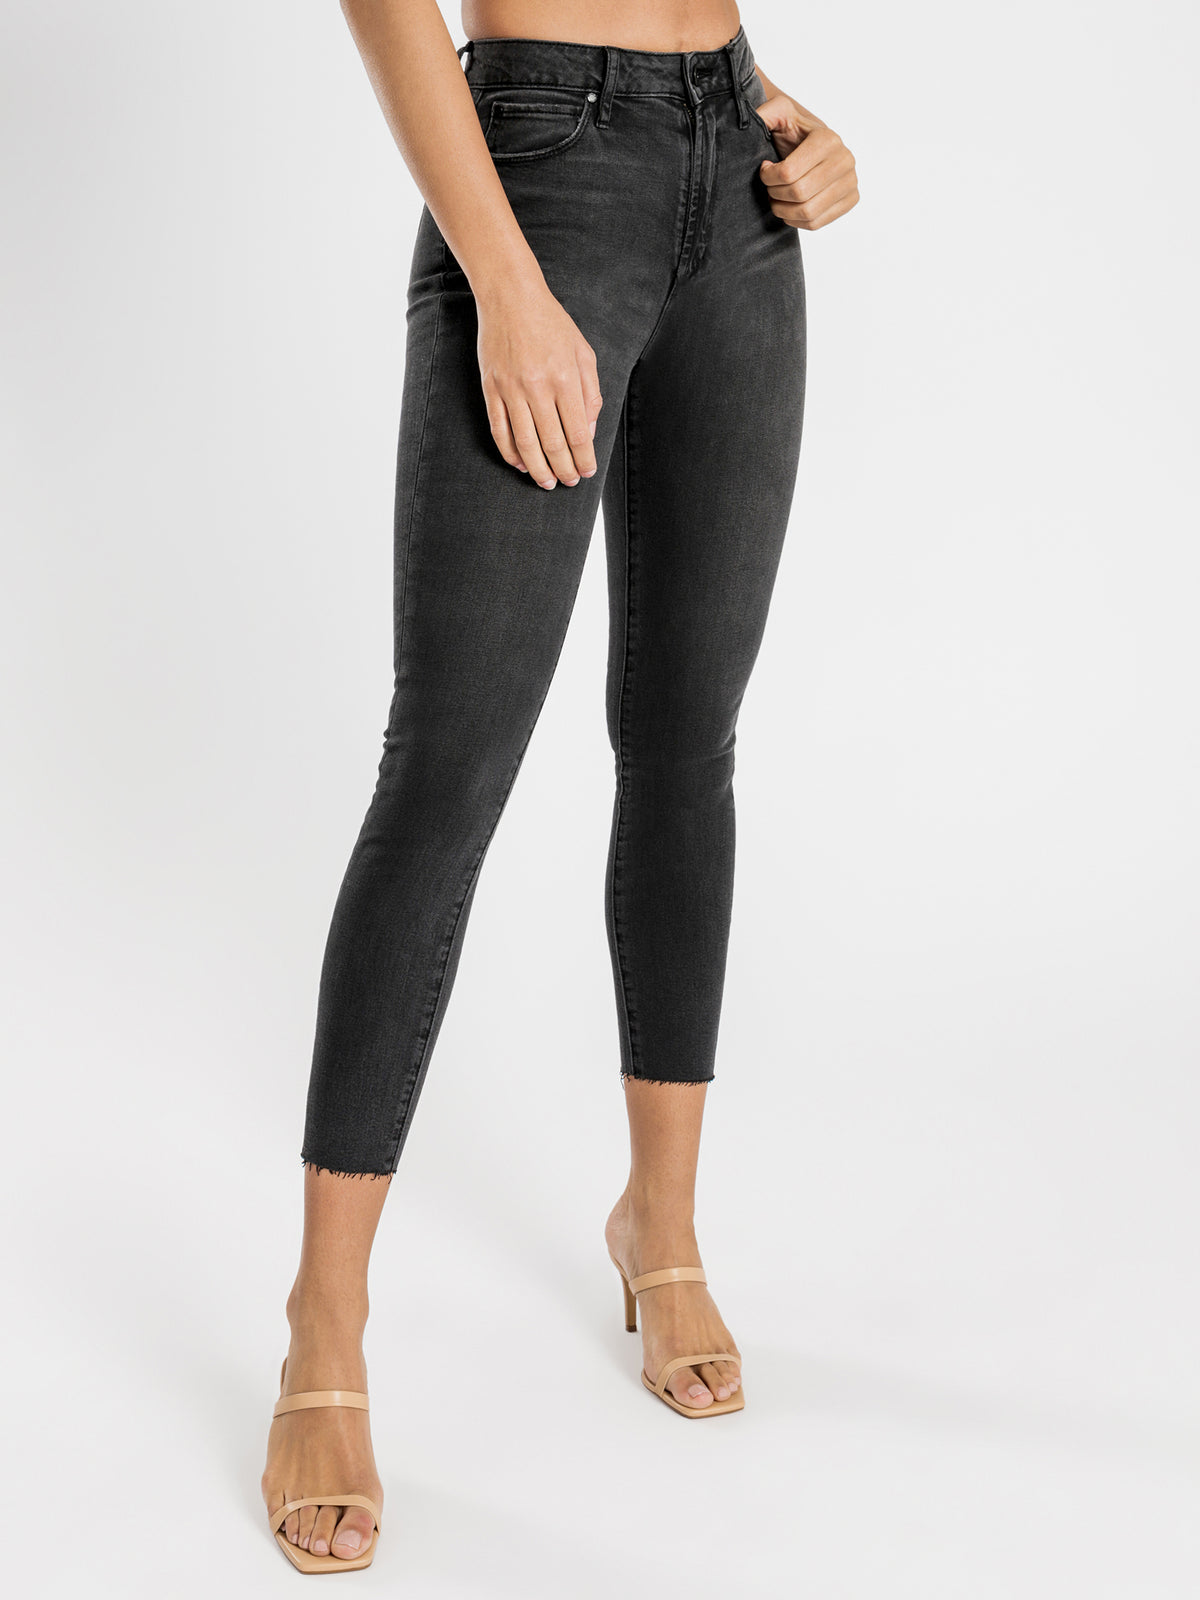 High Lisa Skinny Ankle Hug Jeans in Black Chester